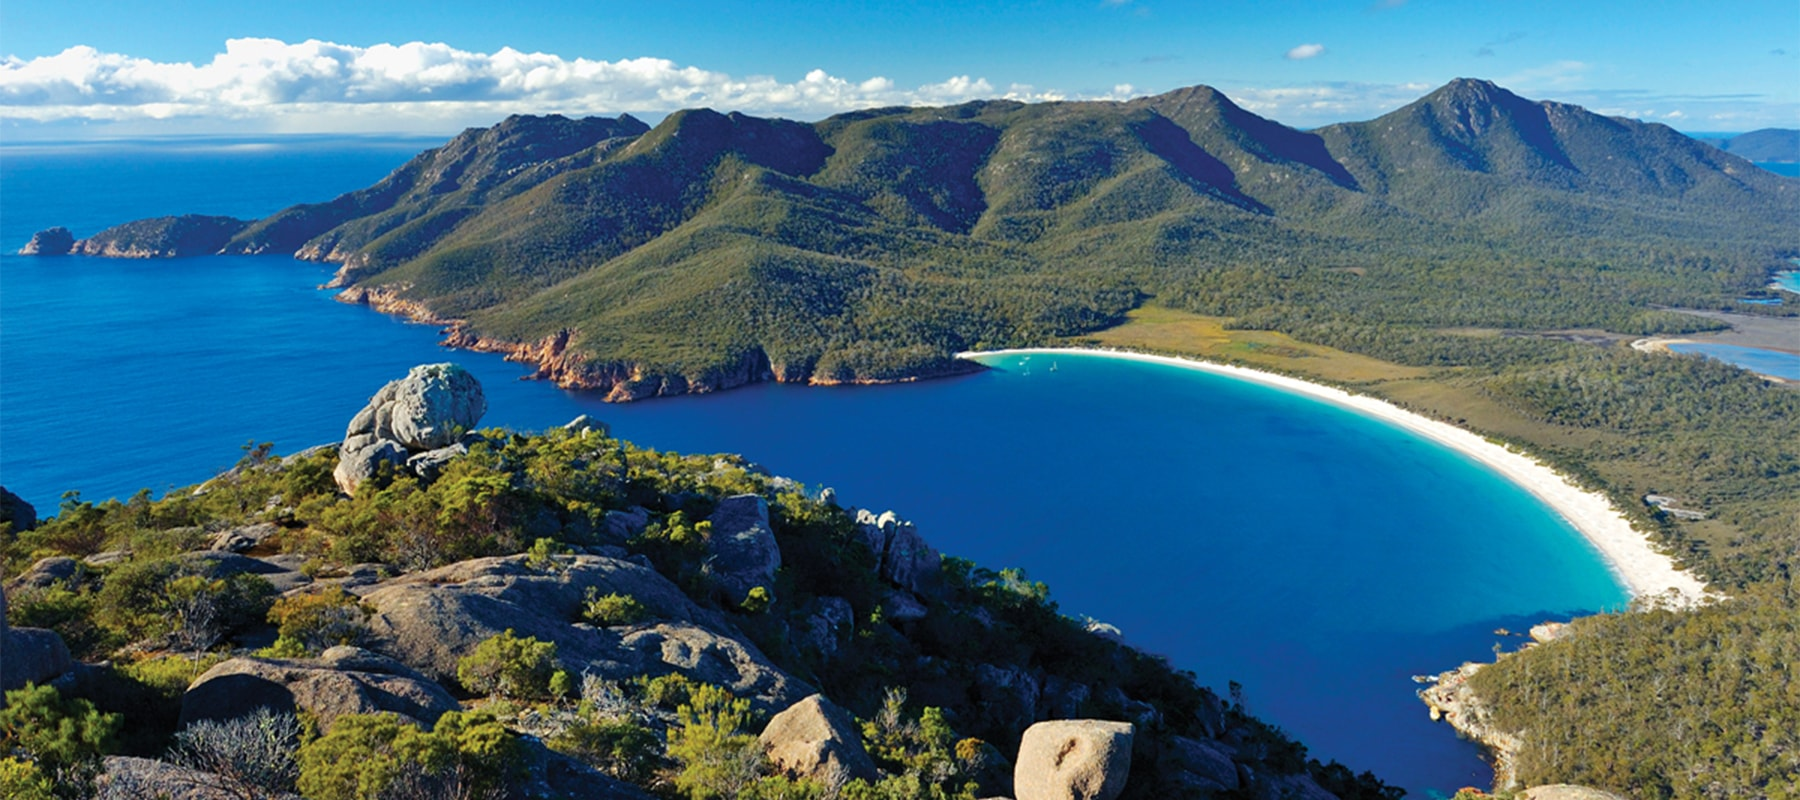 Cruising Tasmania - Image Credit Alamy / Alistair Scott